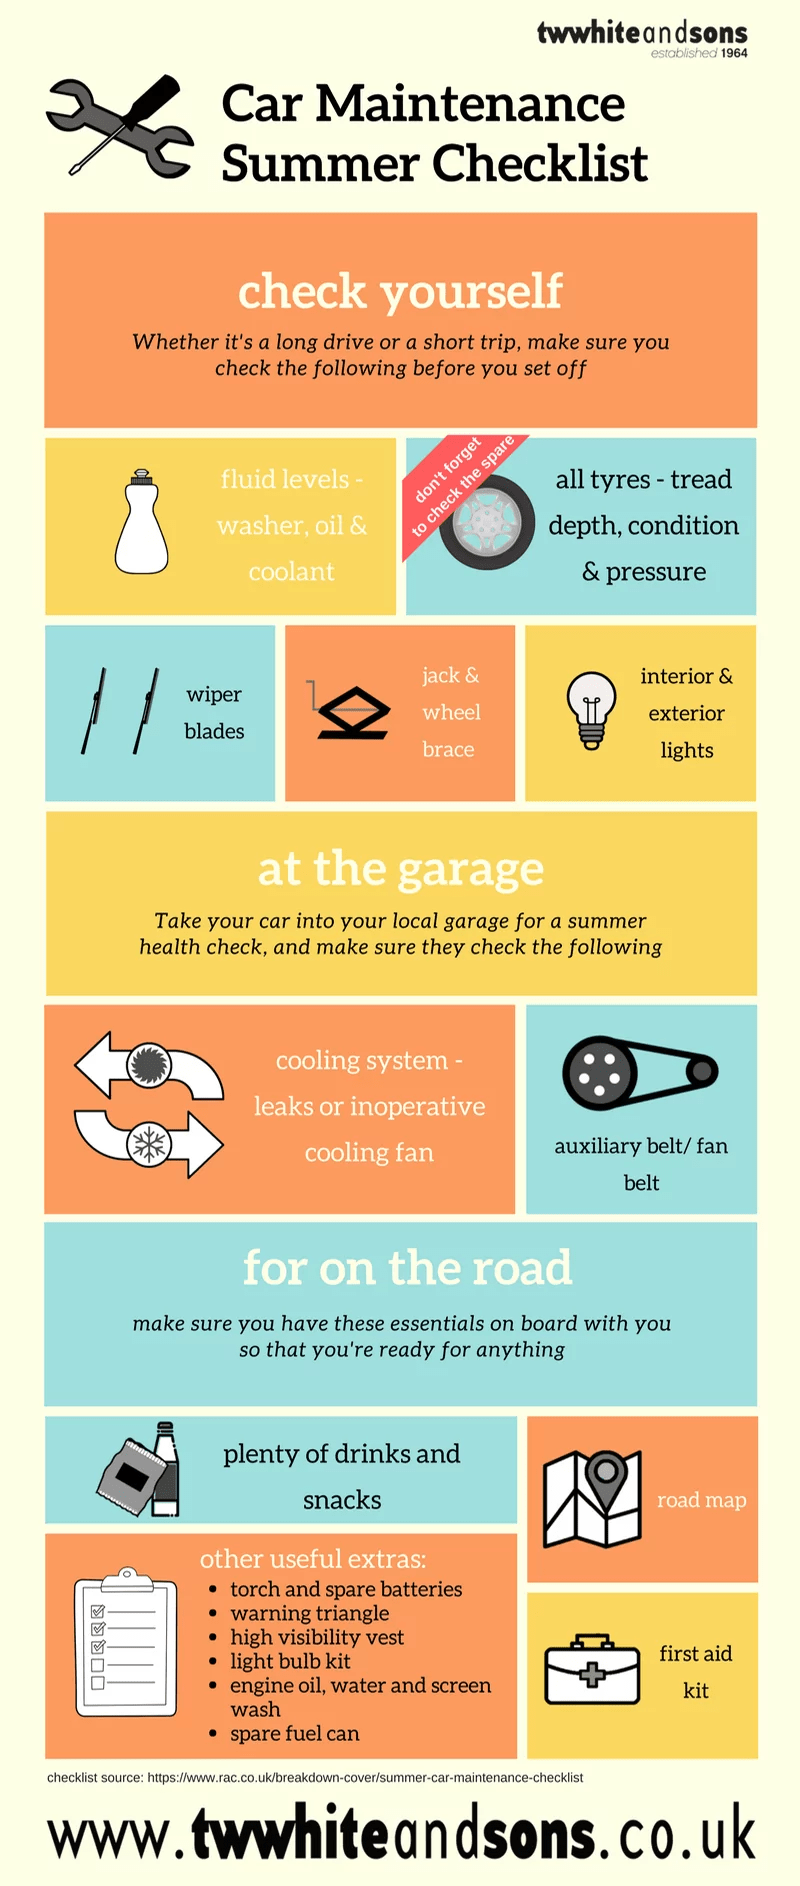 Car Maintenance Summer Checklist Infographic